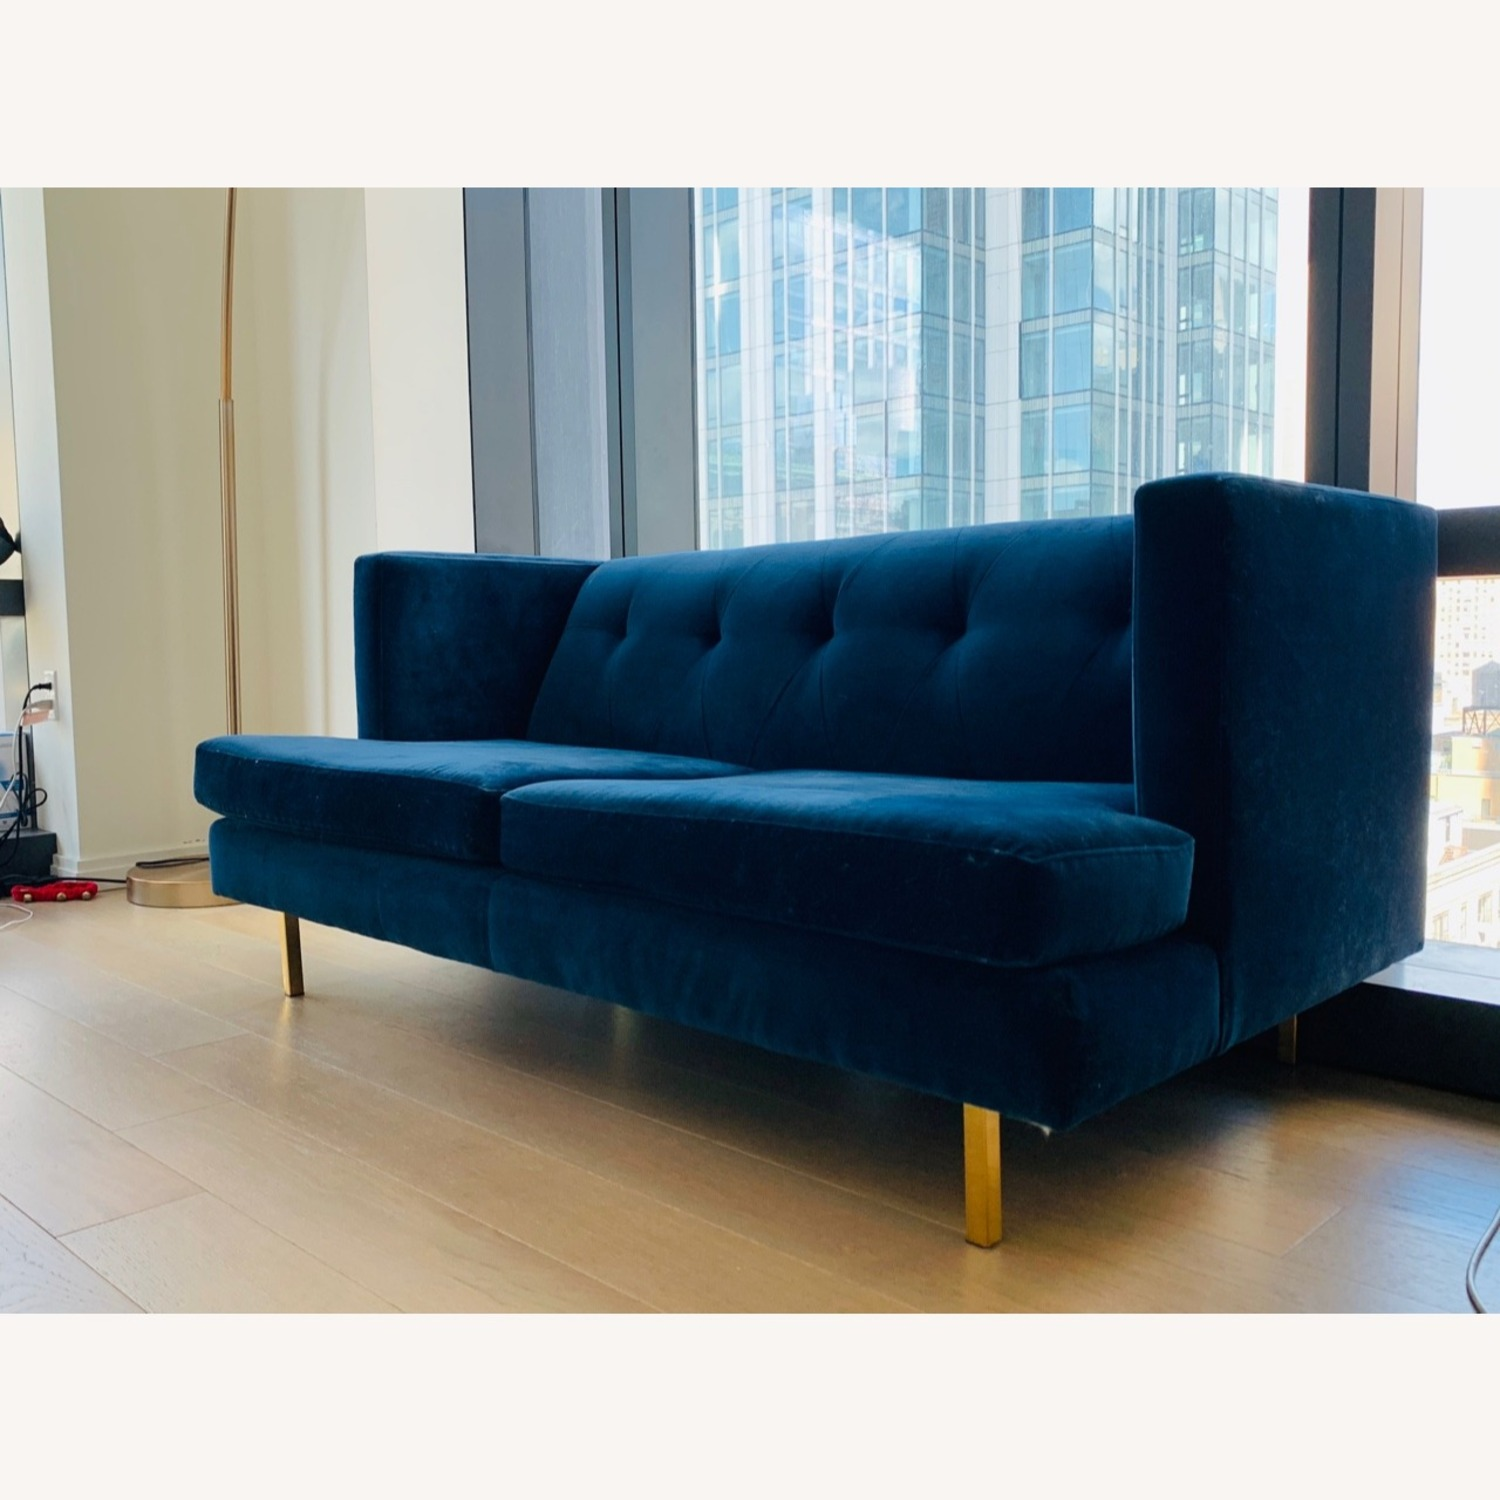 CB2 Avec Sofa with Brass Legs - image-2